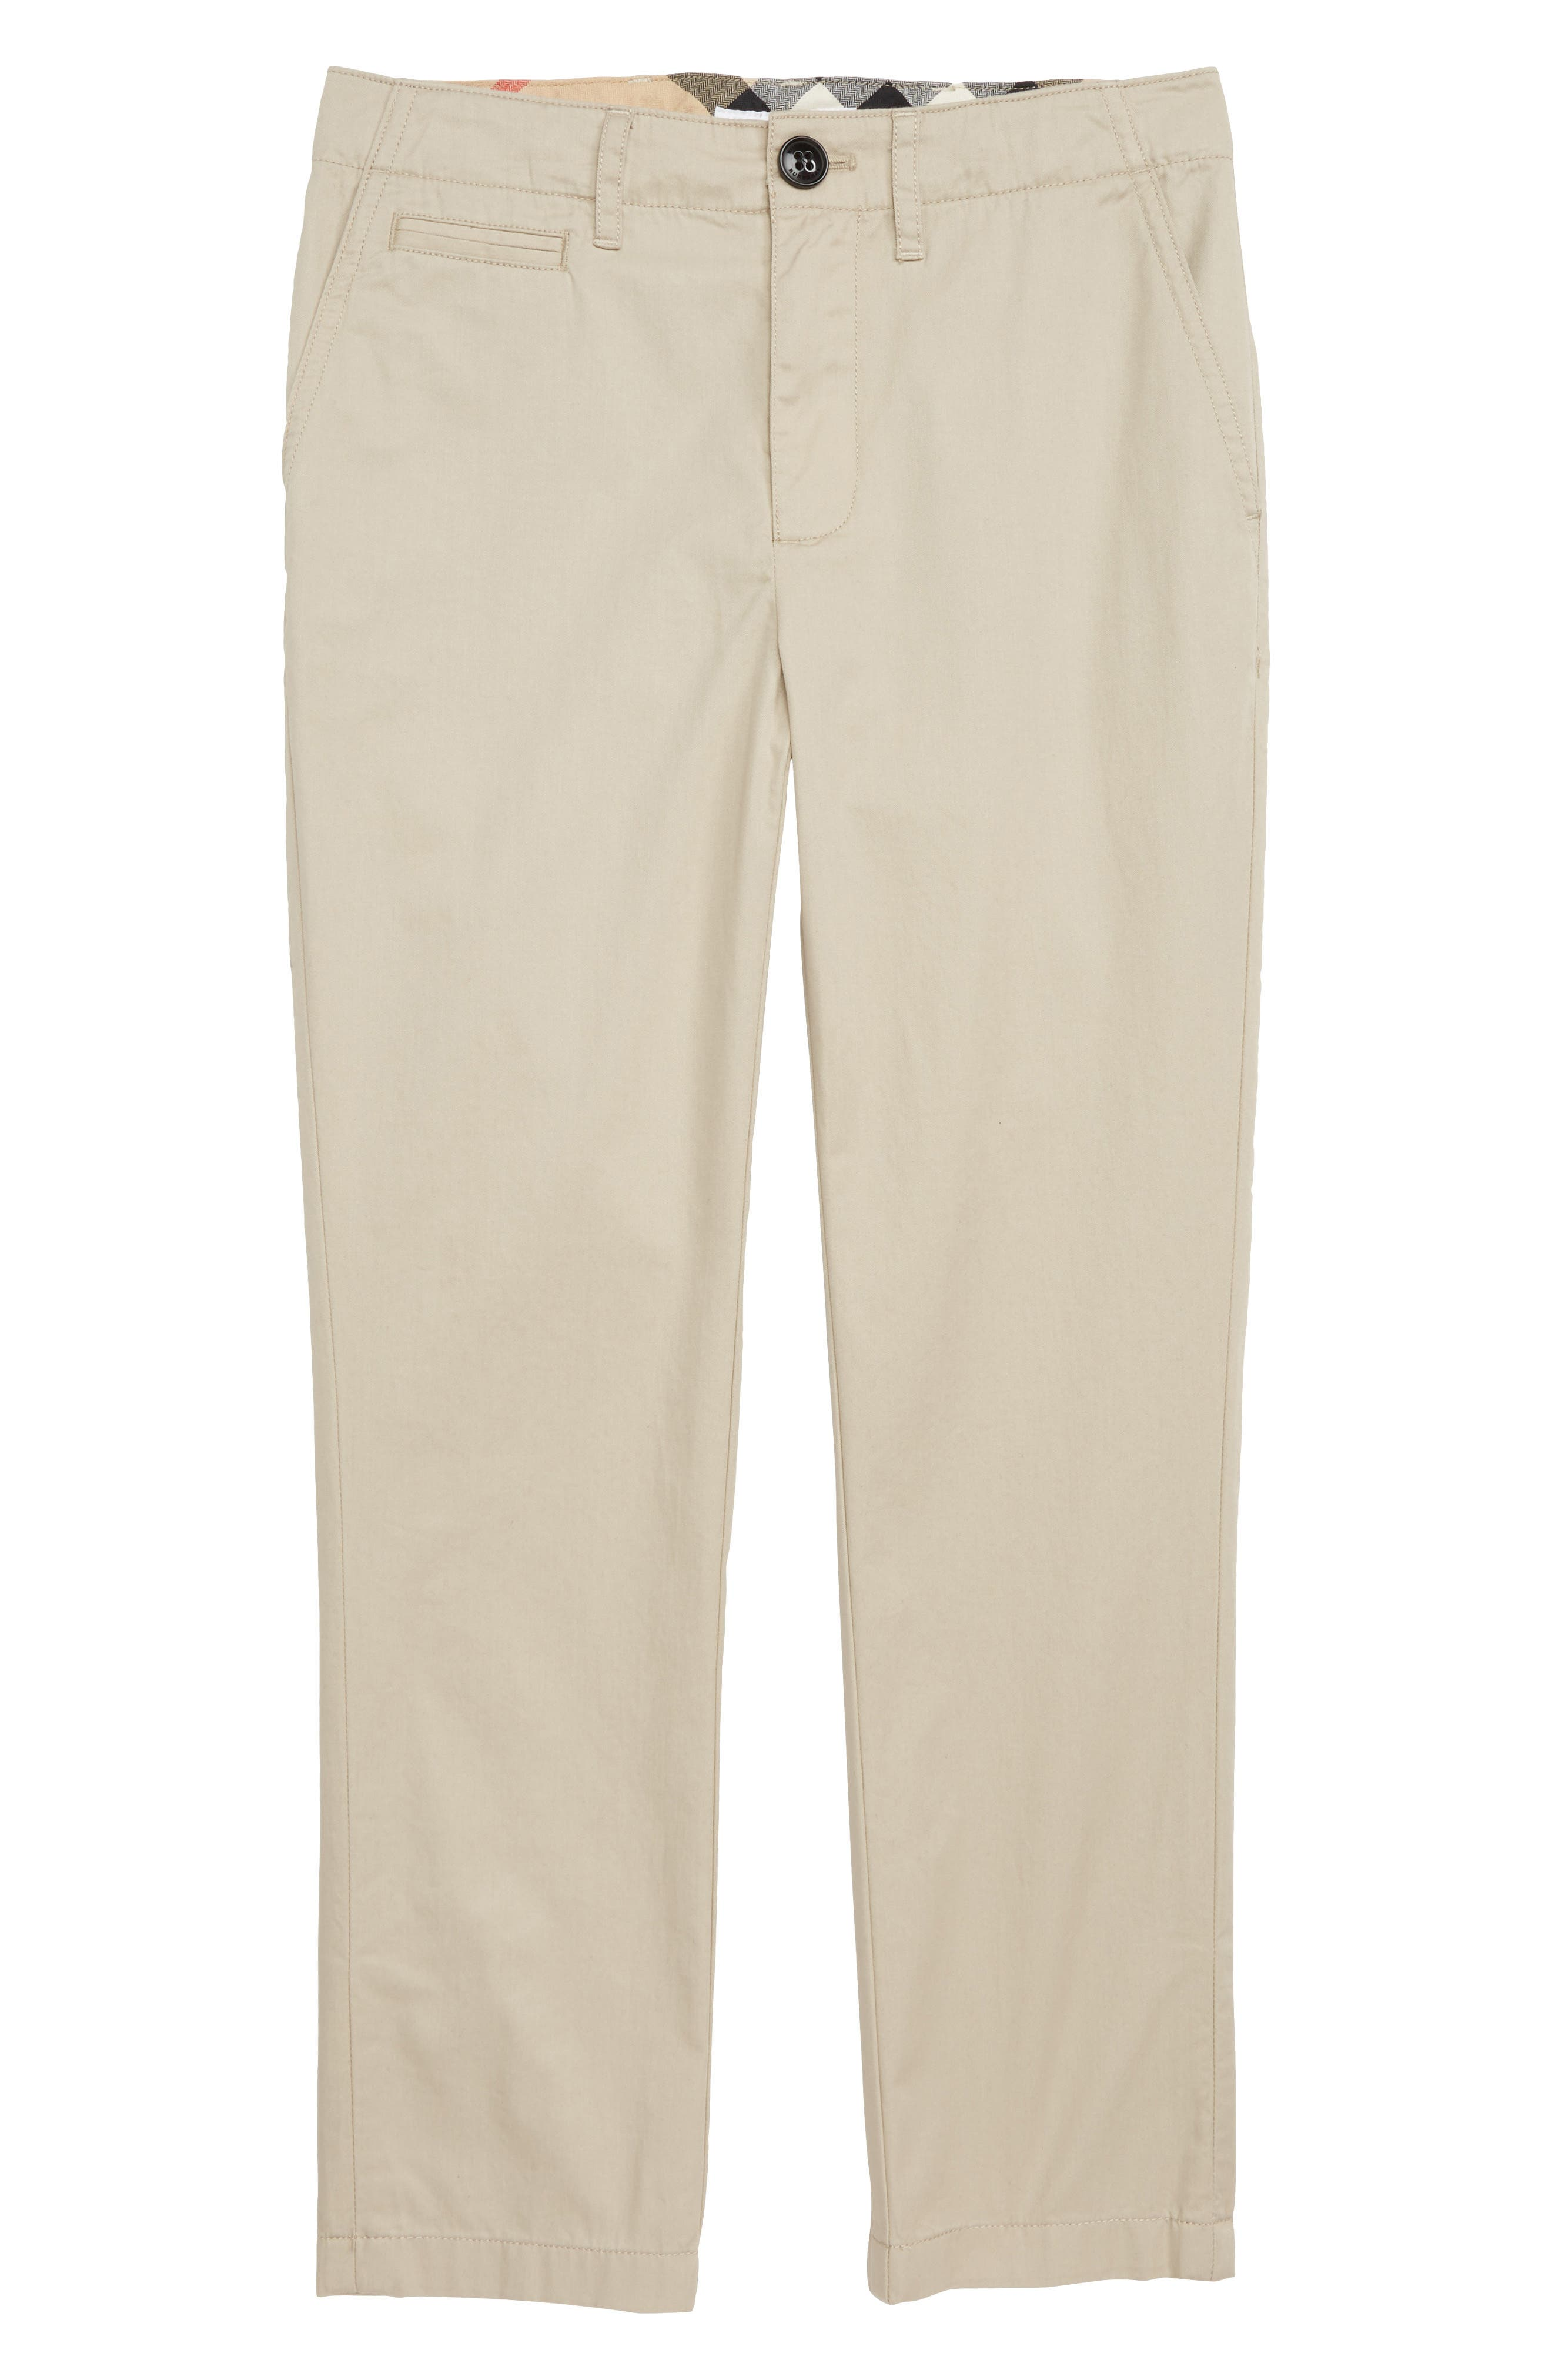 Kids Teo Trousers,                         Main,                         color, GREY STONE